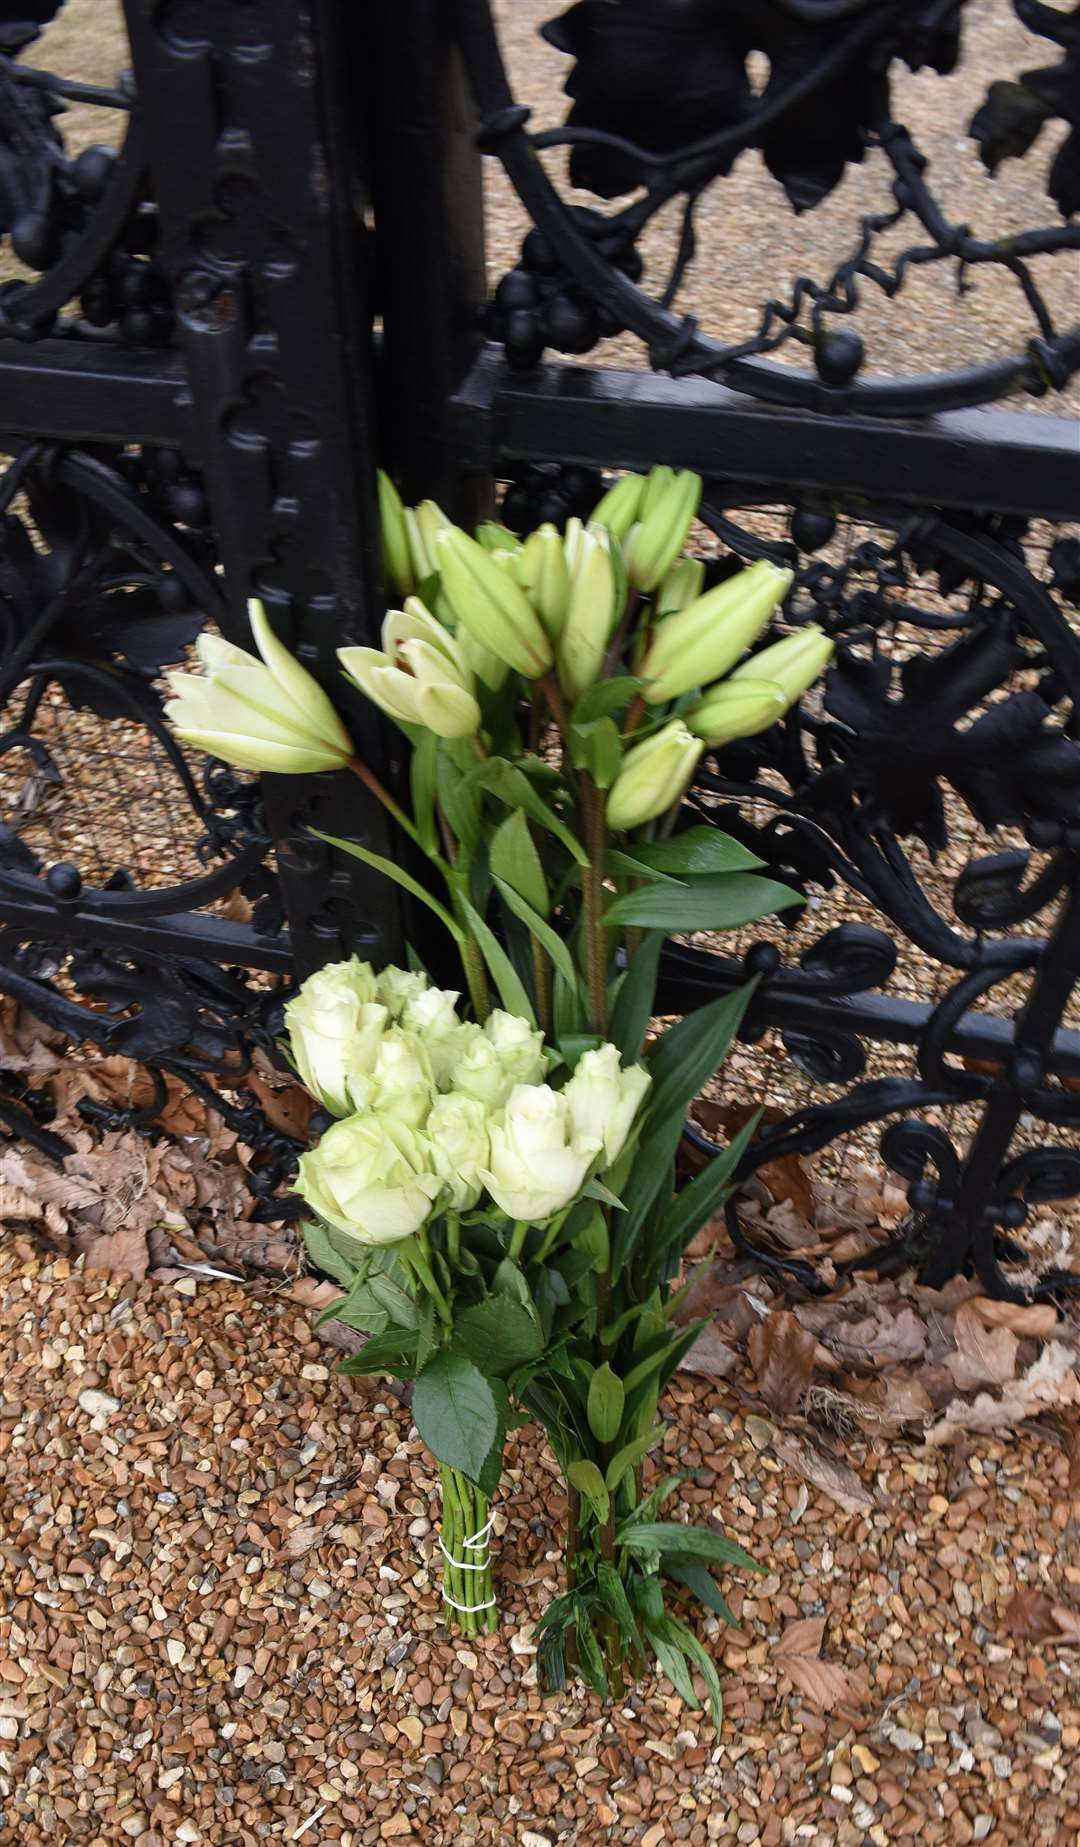 The Scene on the Royal Estate at Sandringham, following the announcement that HRH Duke of Edinburgh has died aged 99 today (Friday 9th April 2021)..Flowers have been placed at the Norwich Gates Sandrington. (46007869)